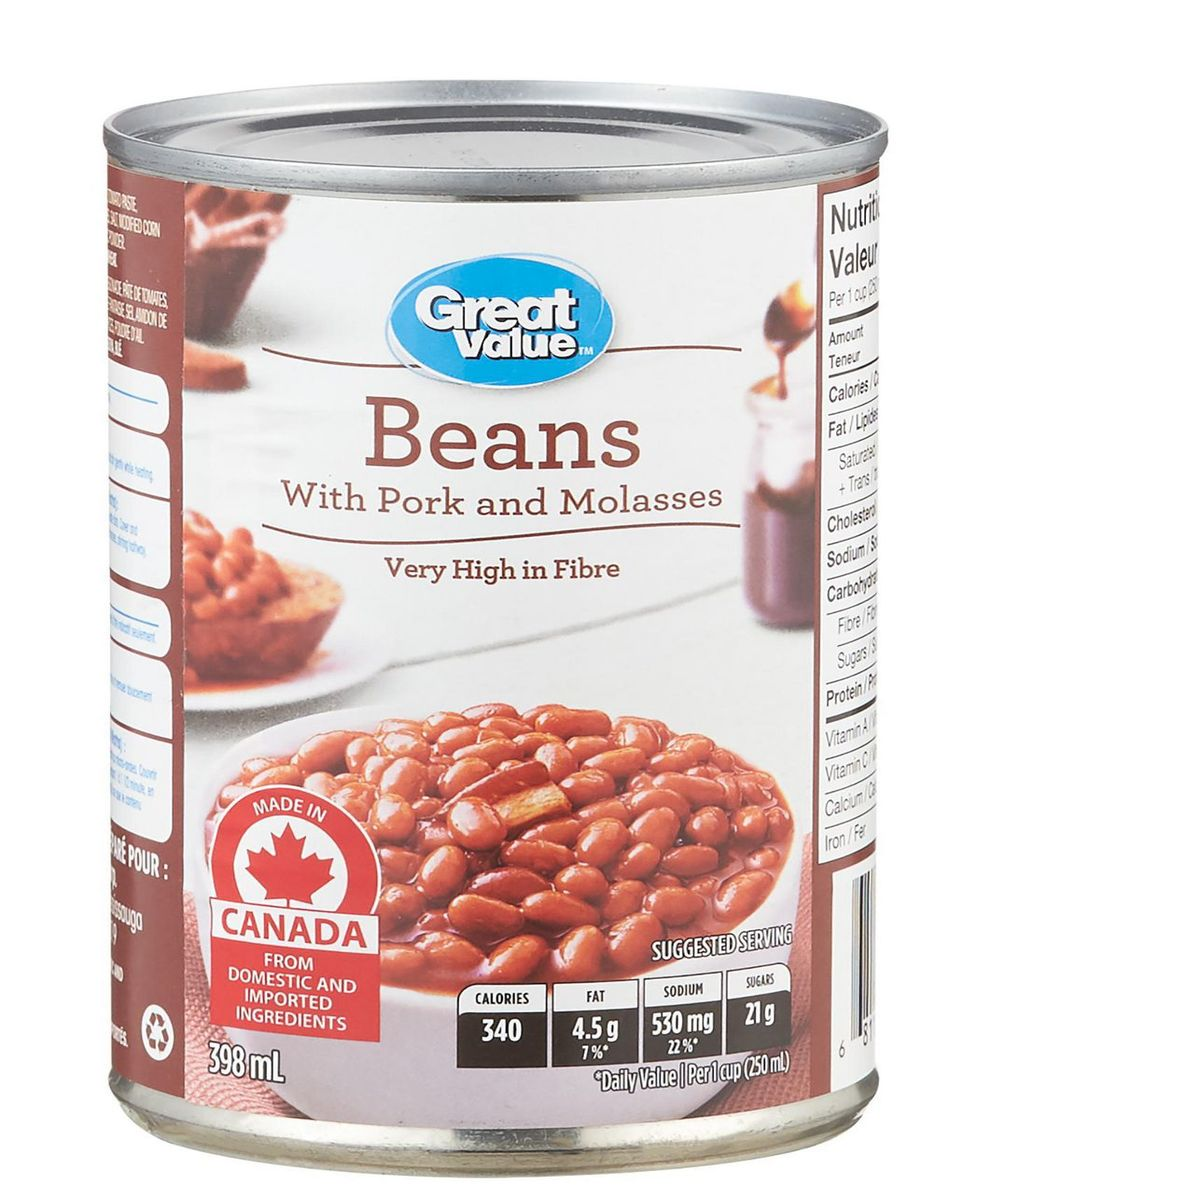 Great Value Baked Beans with Pork & Molasses 398ml